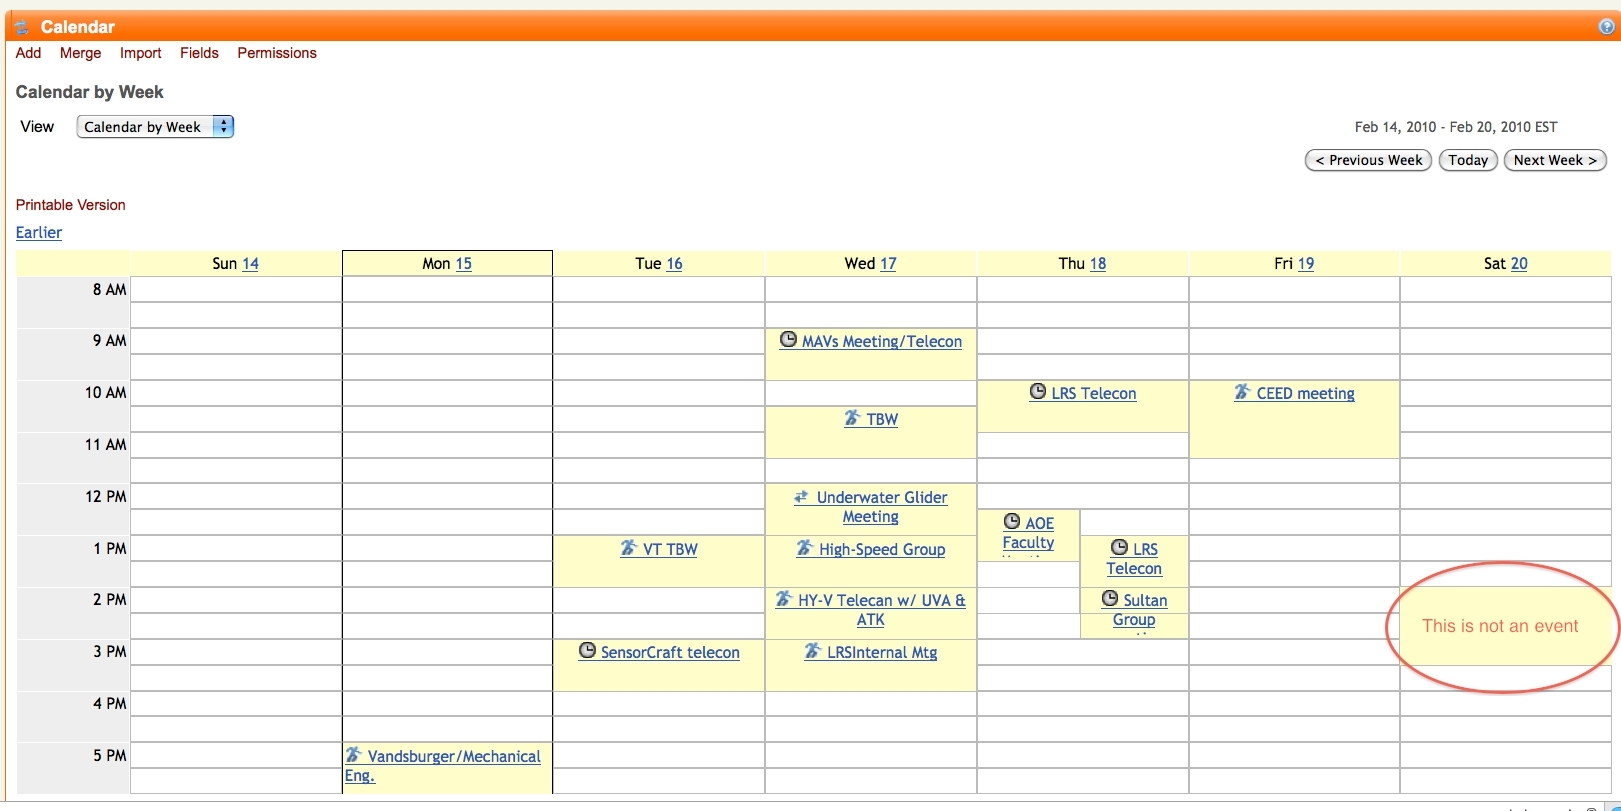 Monthly Calendar Schedule With Time Slots | Blank Calendar Template  Monthly Calendar Schedule With Time Slots